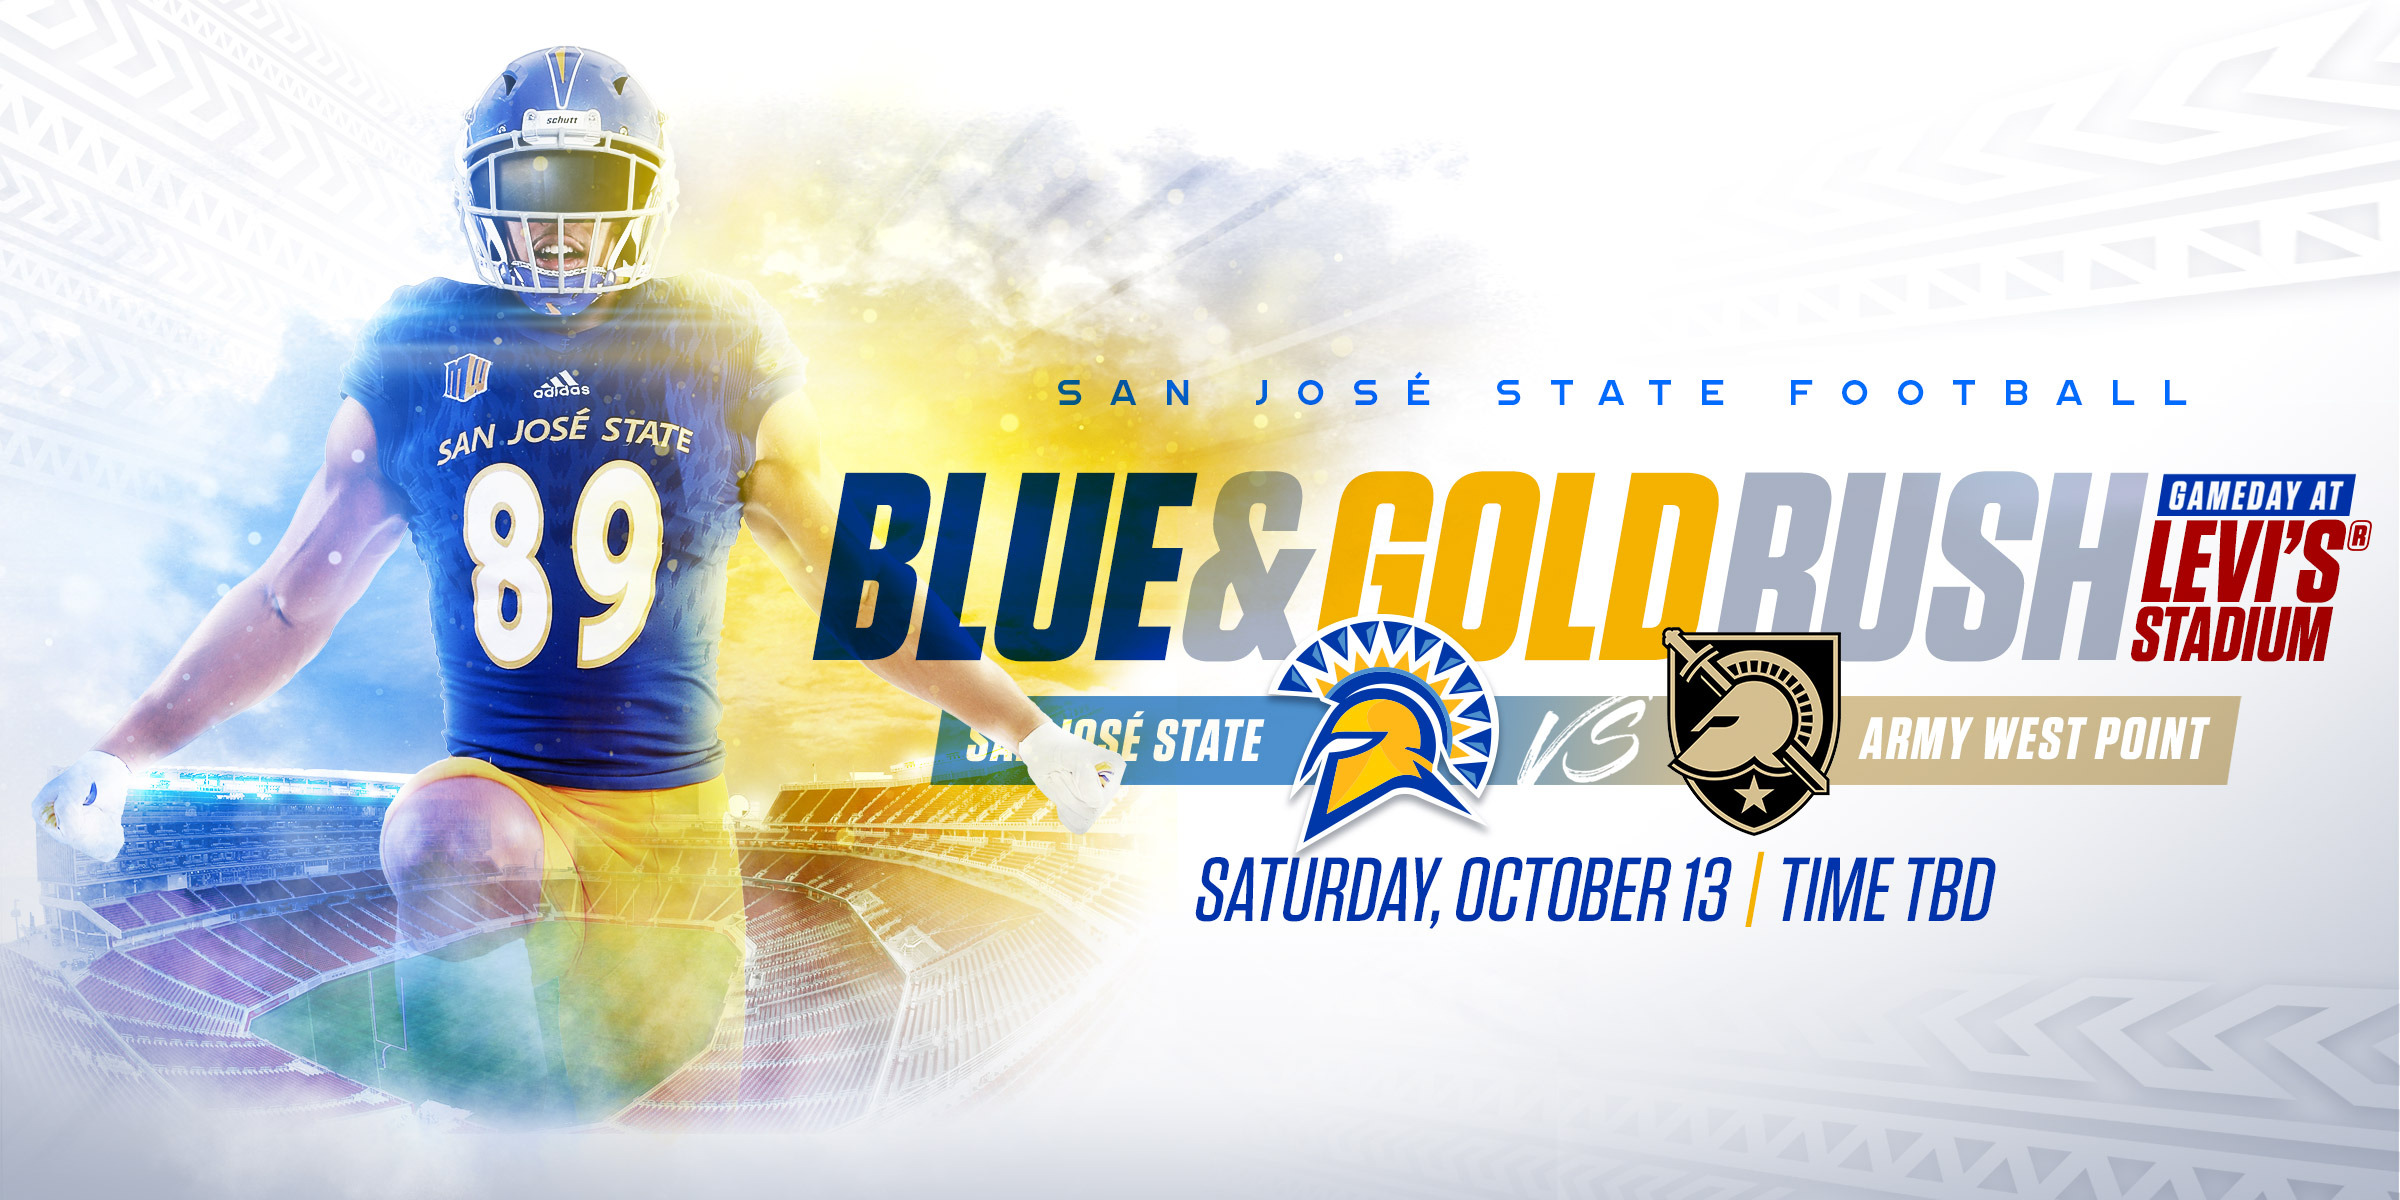 cd149fc44 San Jose State vs. Army West Point Football Game Moved To Levi s ...